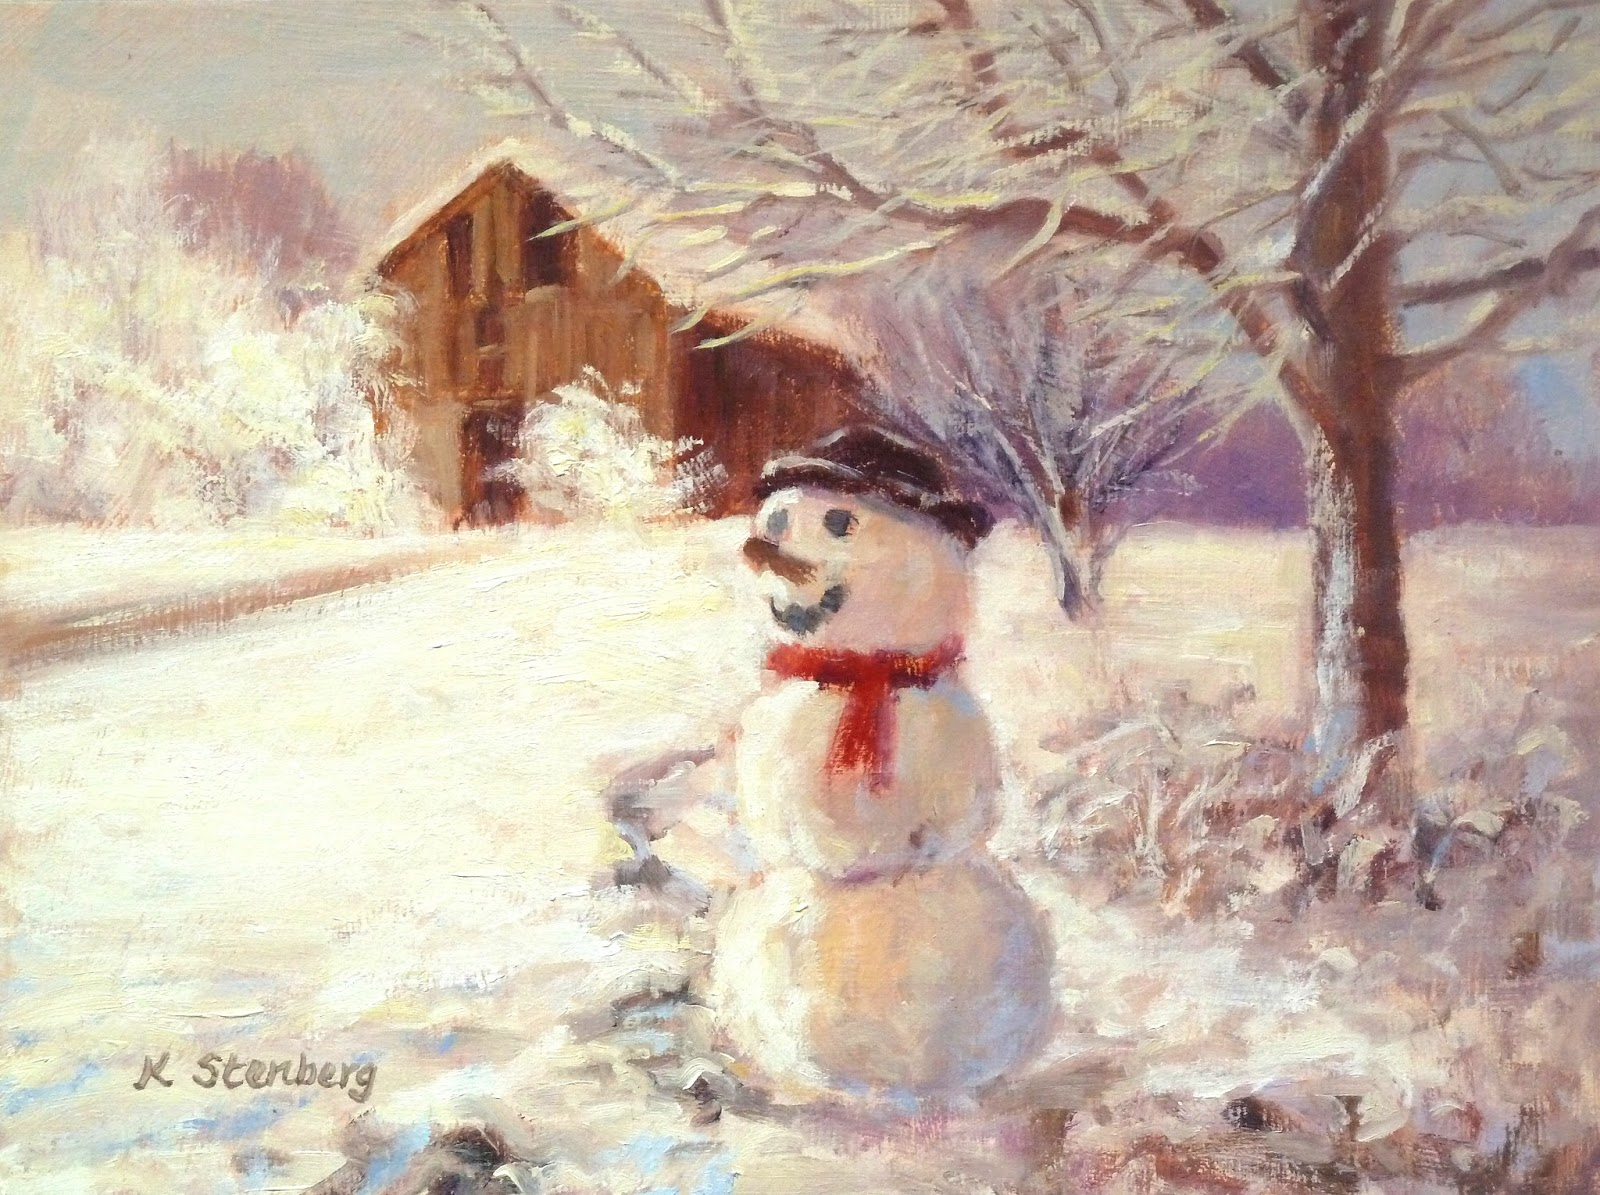 kim stenbergs painting journal quotsnowman and barnquot oil